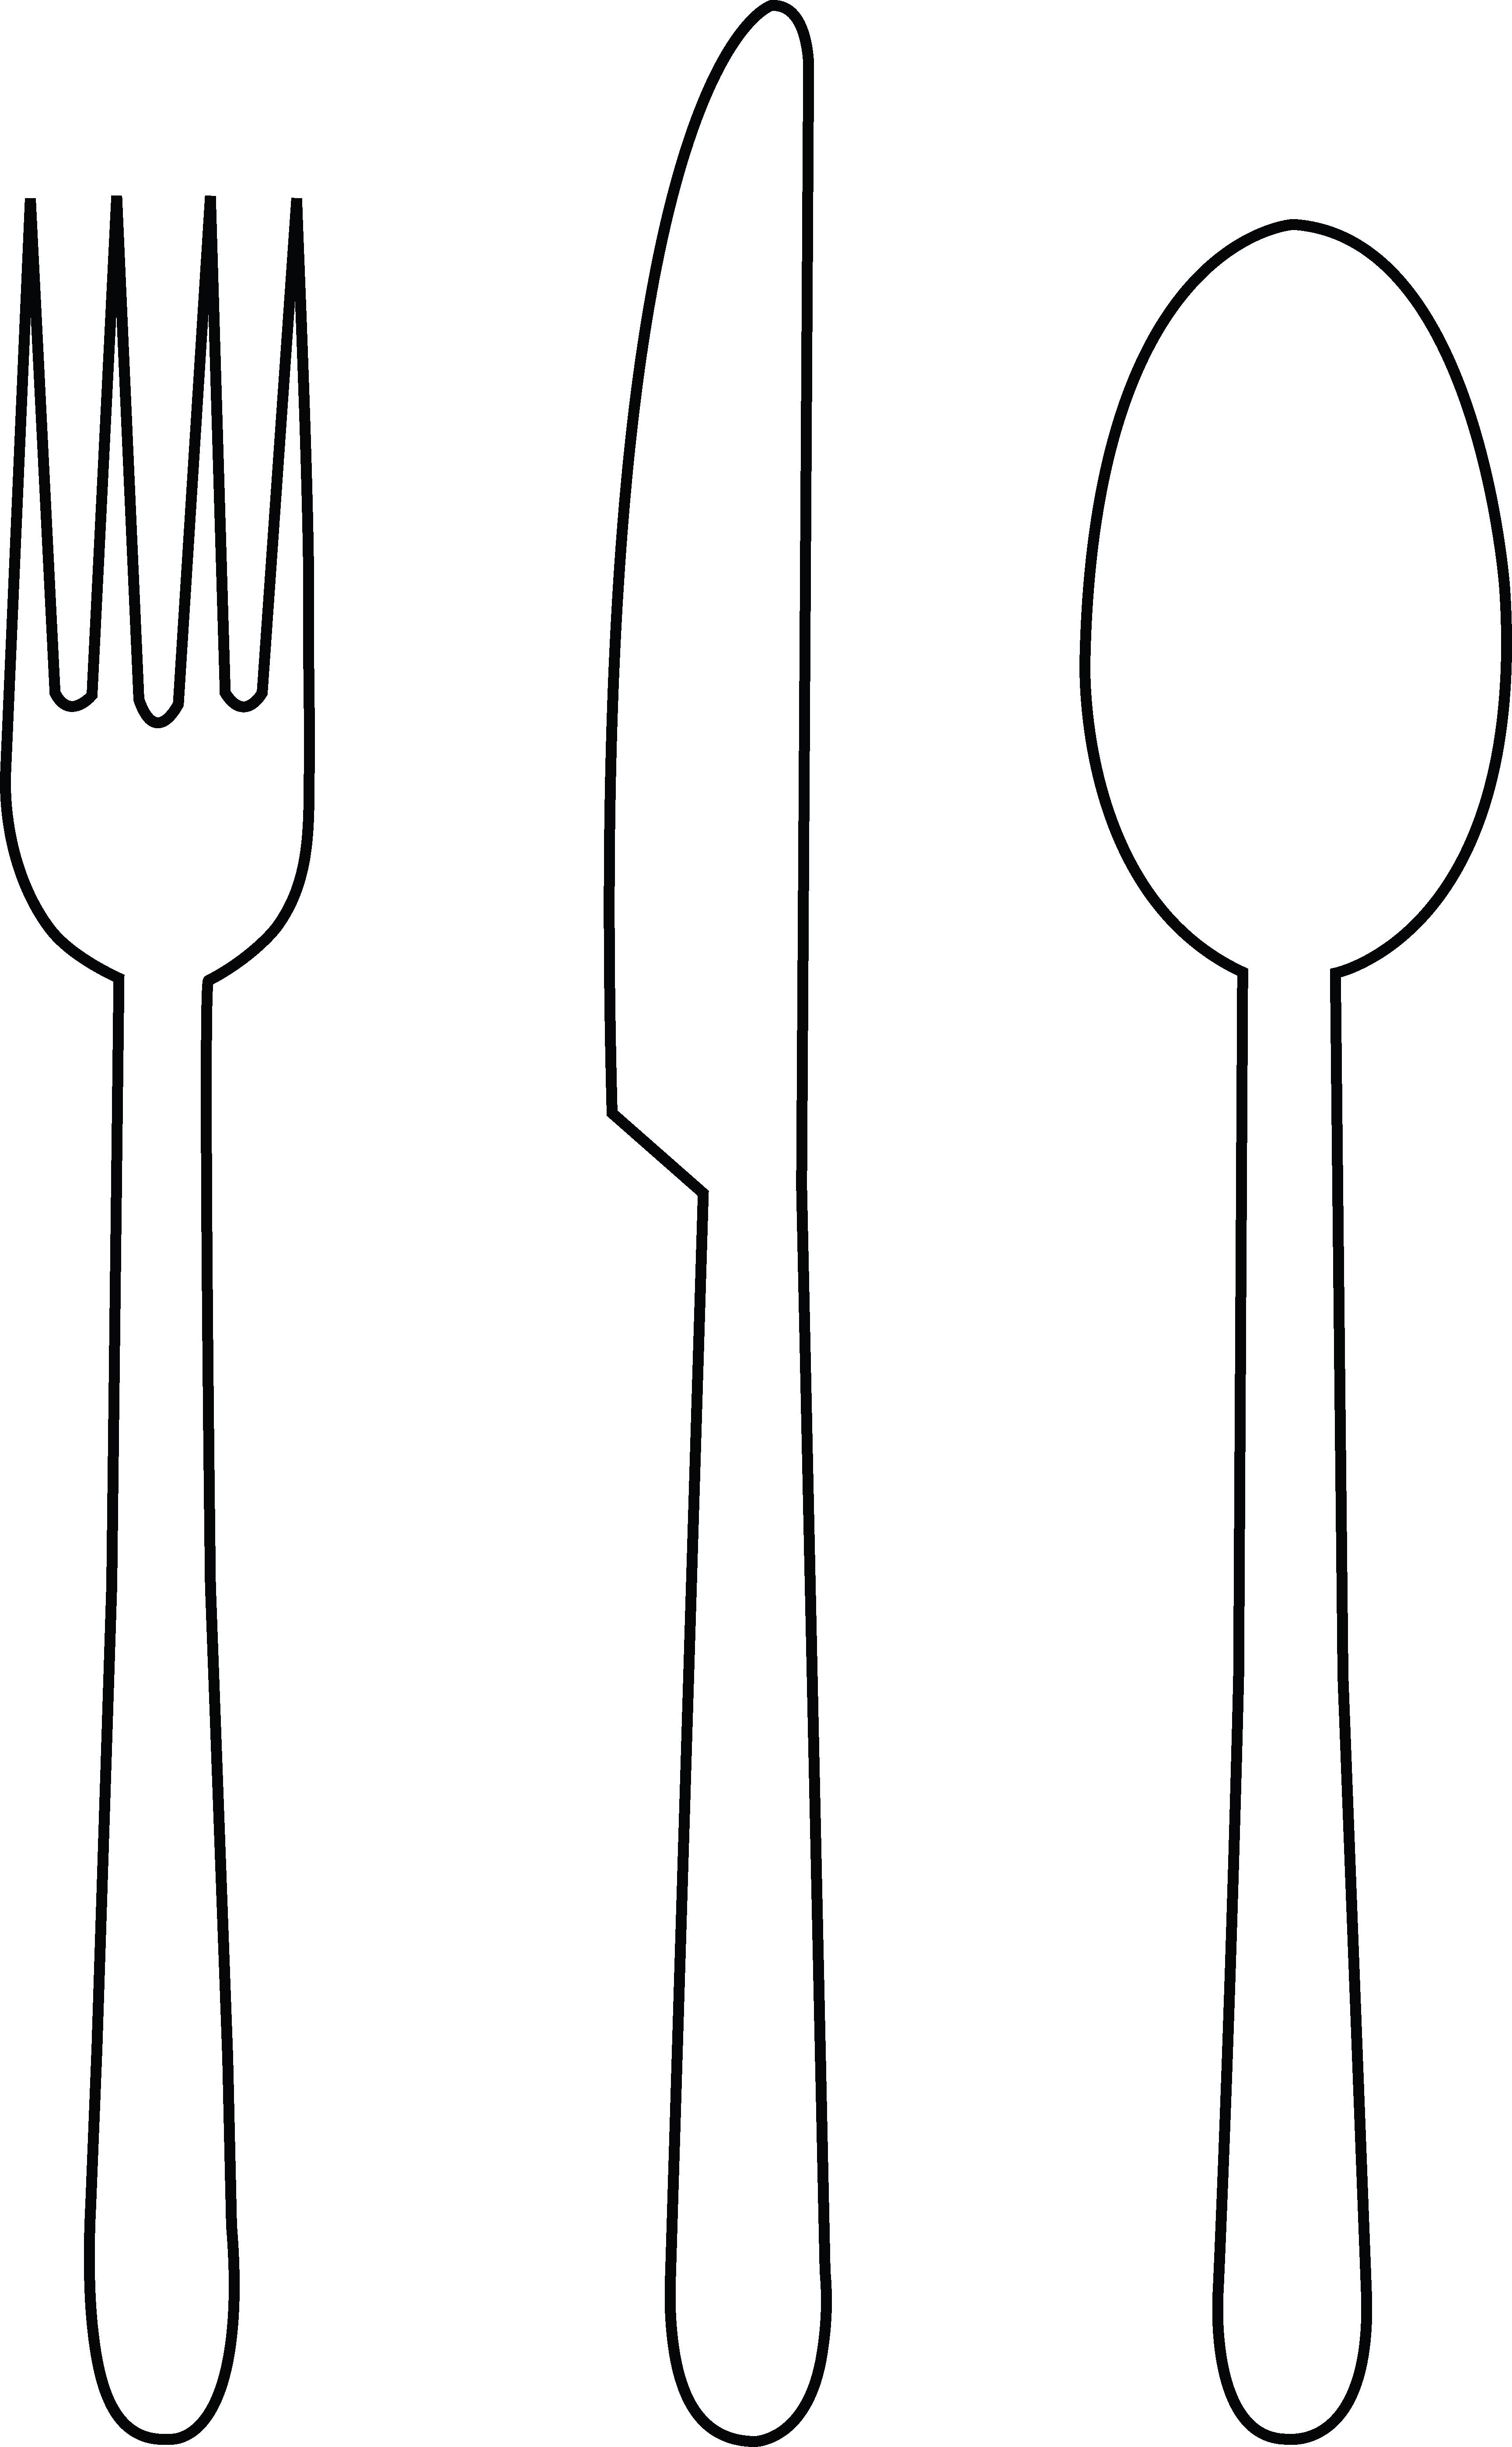 Khife clipart spoon Spoon Spoon Set Fork Pictures